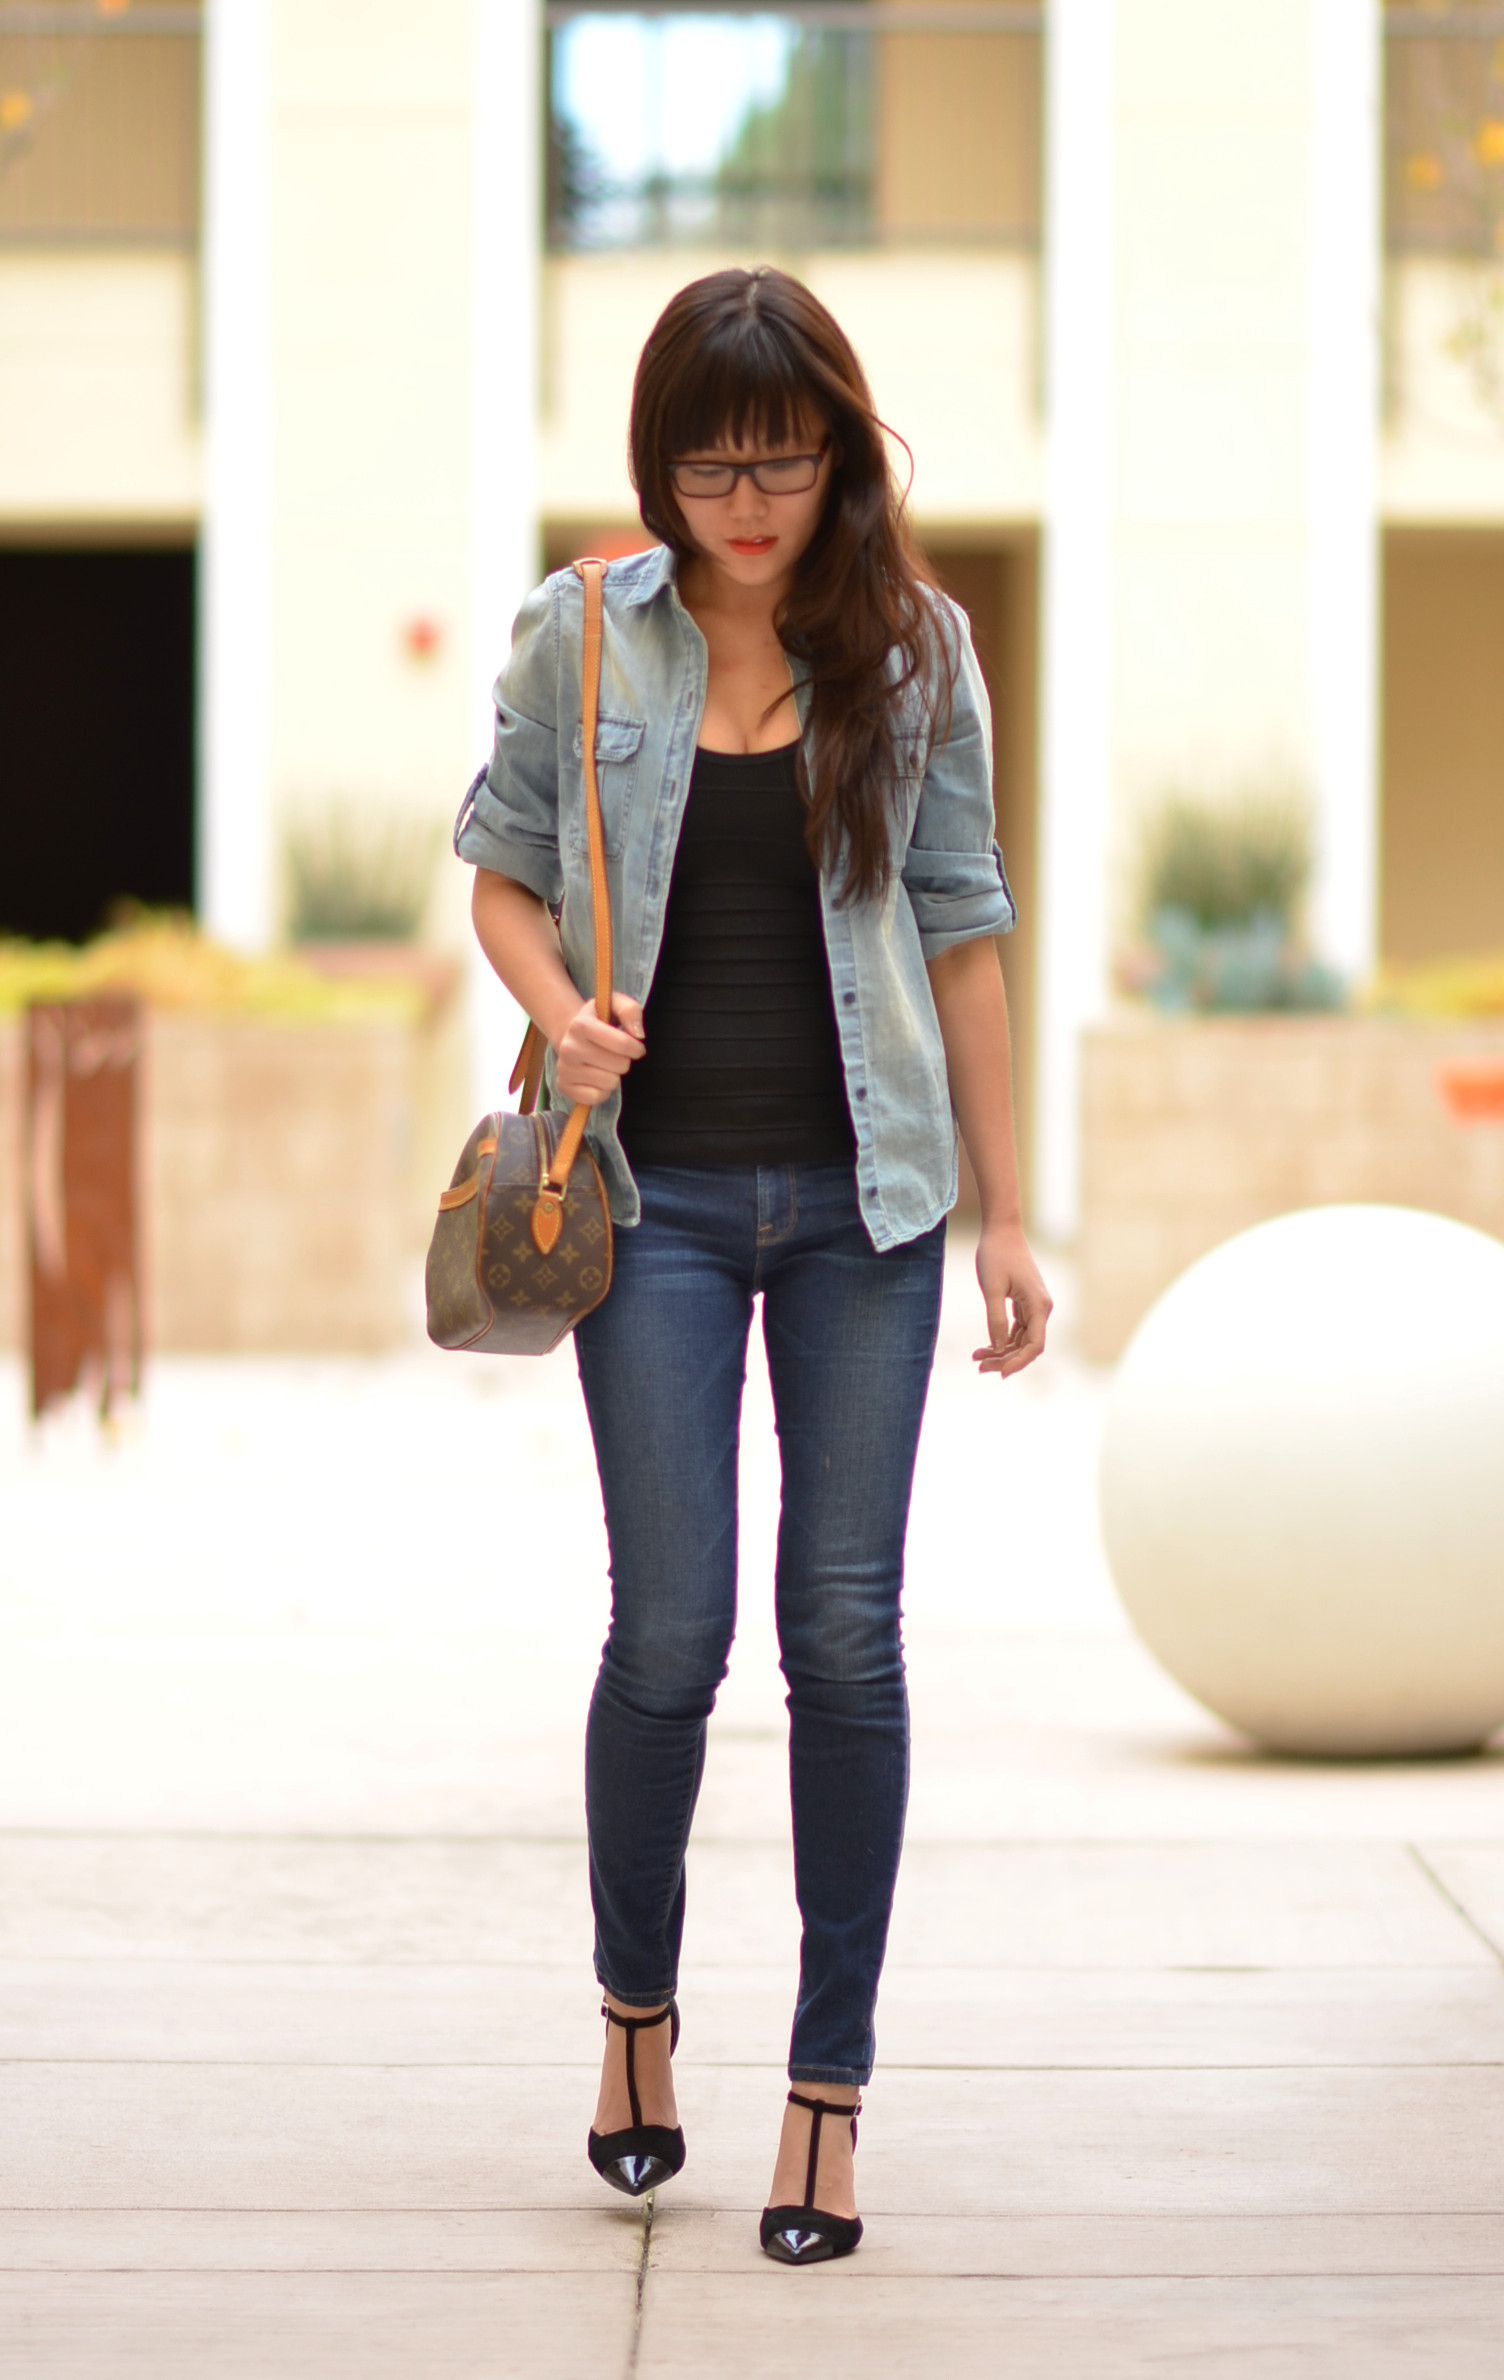 chambray button up as cardigan black herve leger tank top skinny jeans t-strap heels outfit